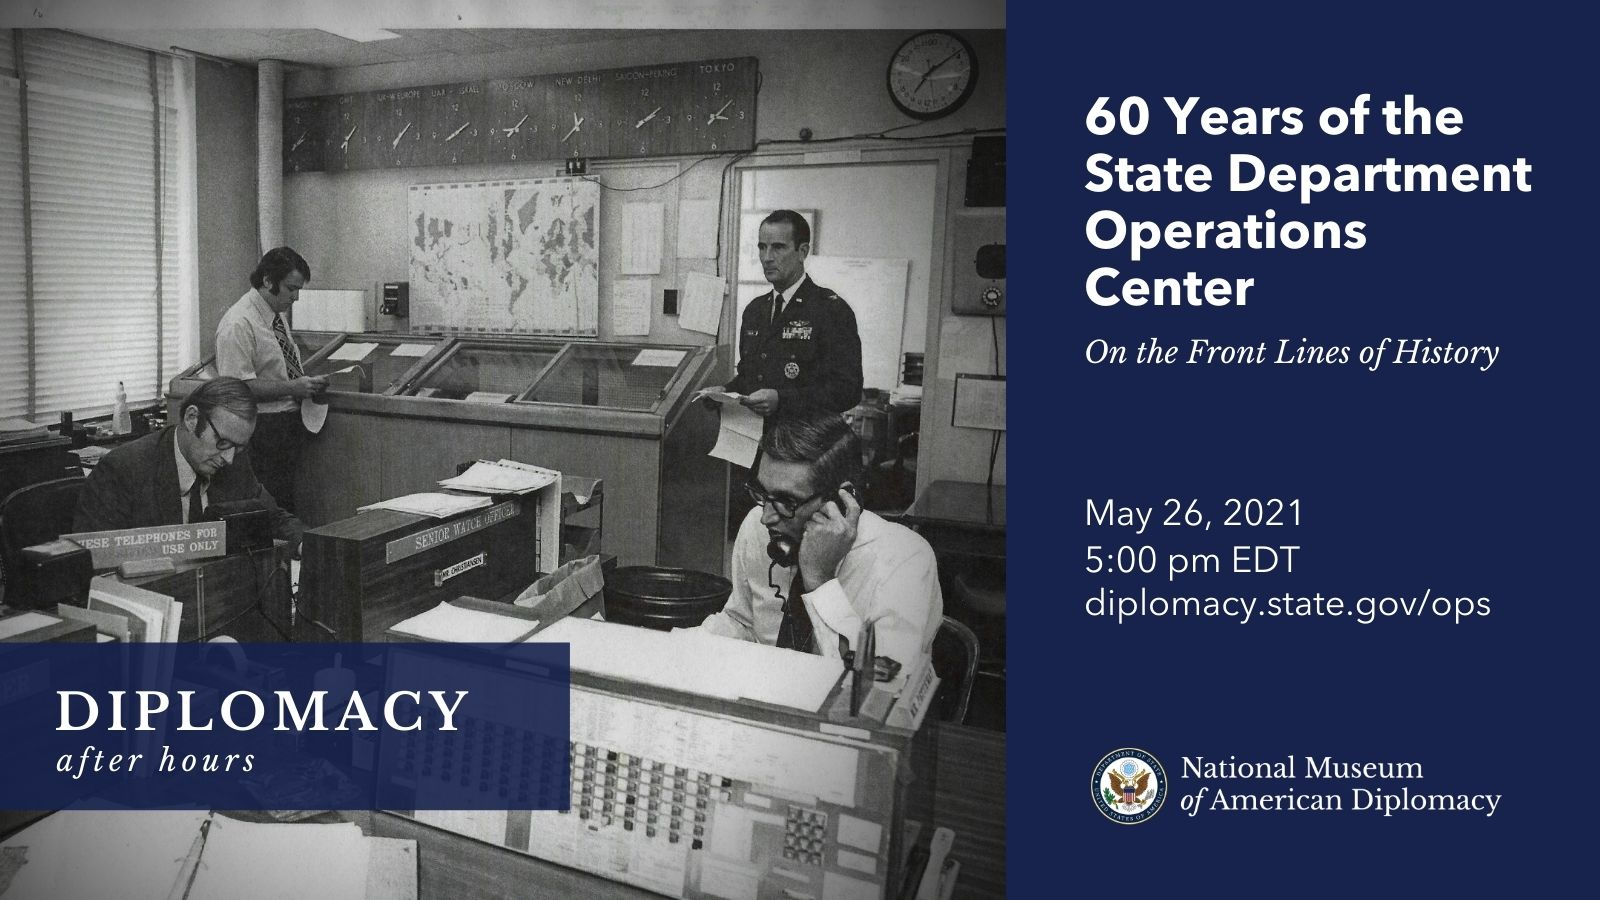 diplomacy after hours event Operations Center 60th anniversary